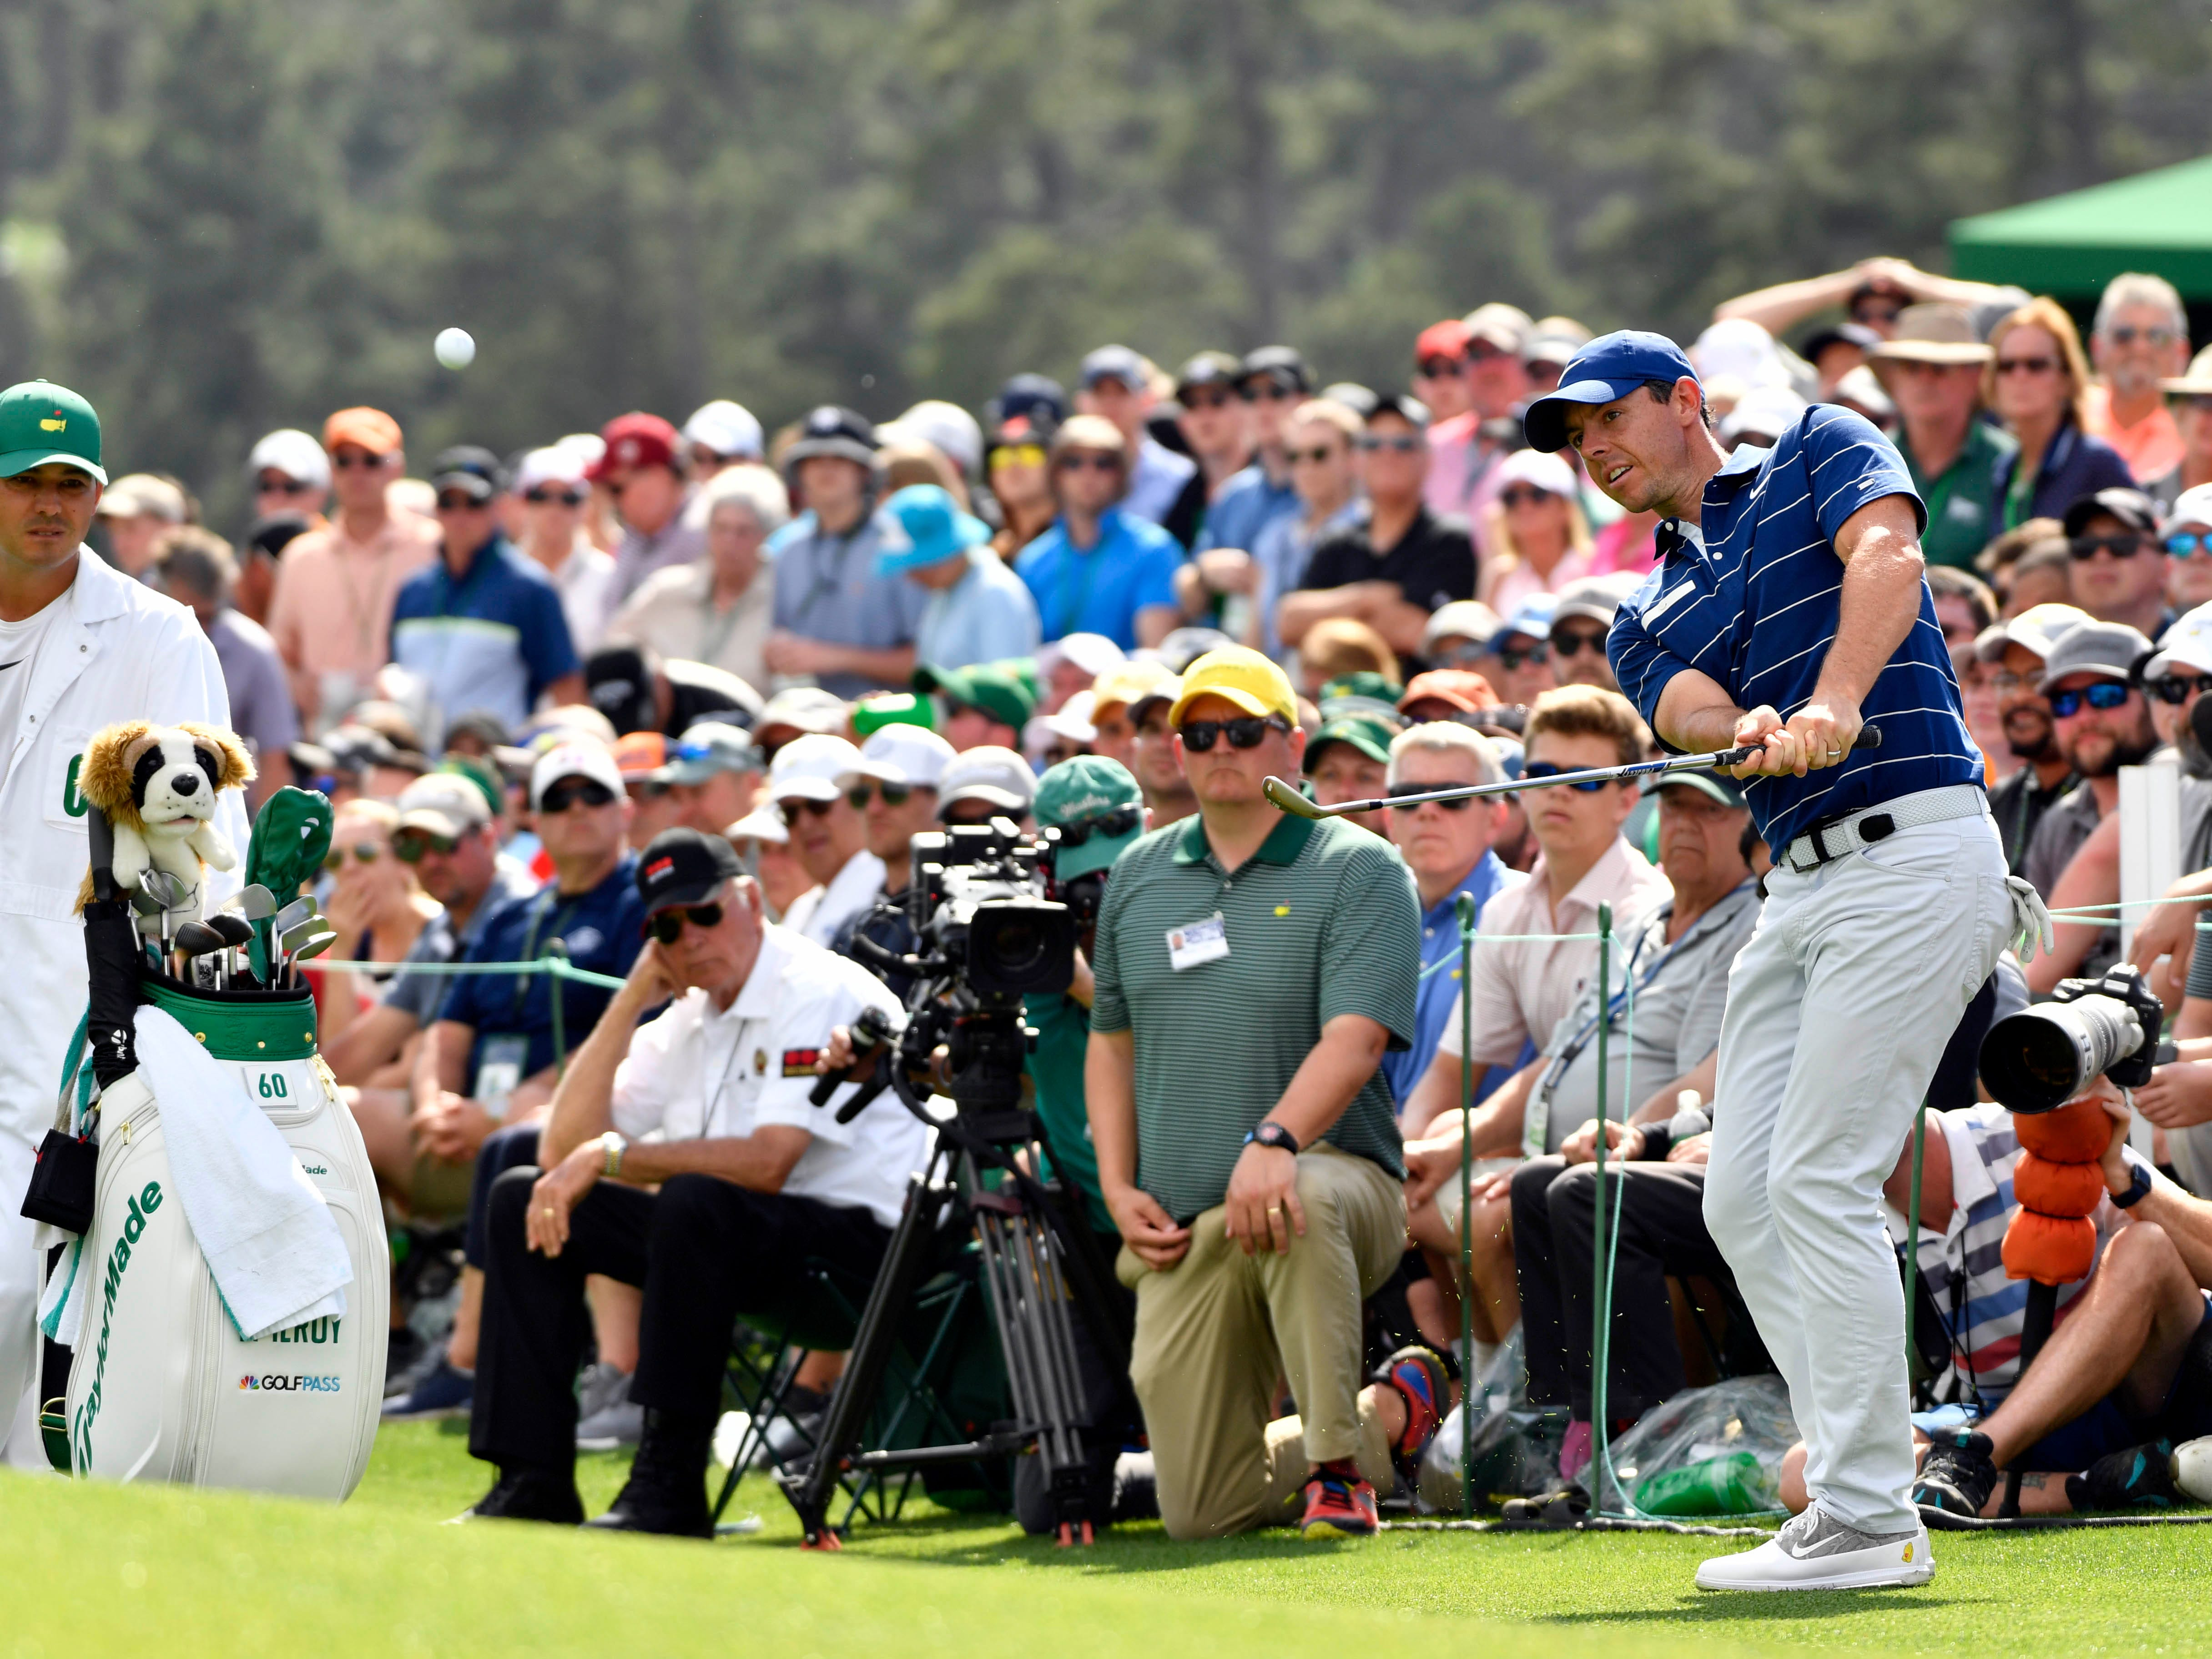 Apr 11, 2019; Augusta, GA, USA; Rory McIlroy chips onto the 18th green during the first round of The Masters golf tournament at Augusta National Golf Club.